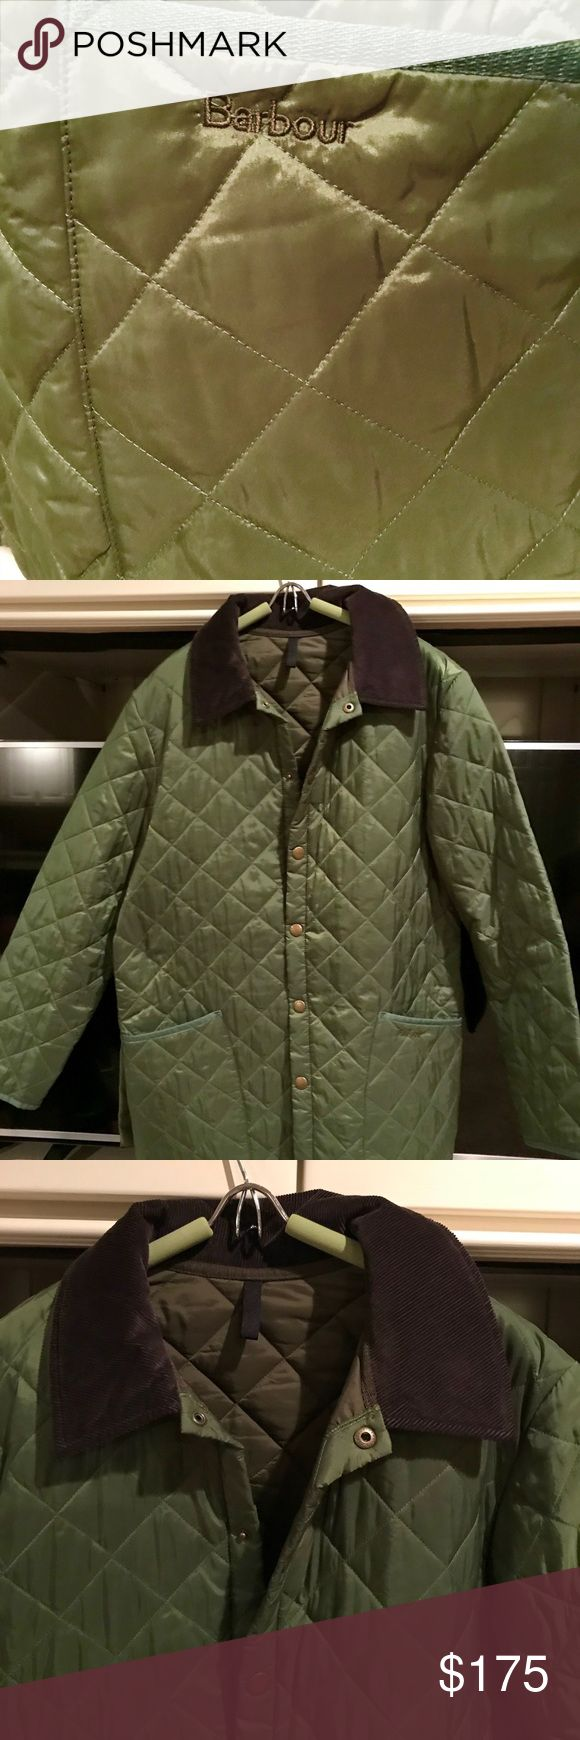 Men's Barbour quilted coat Olive green quilted jacket with a brown corduroy collar. Worn twice! Excellent condition and awesome price! Now low balling please! Barbour Jackets & Coats